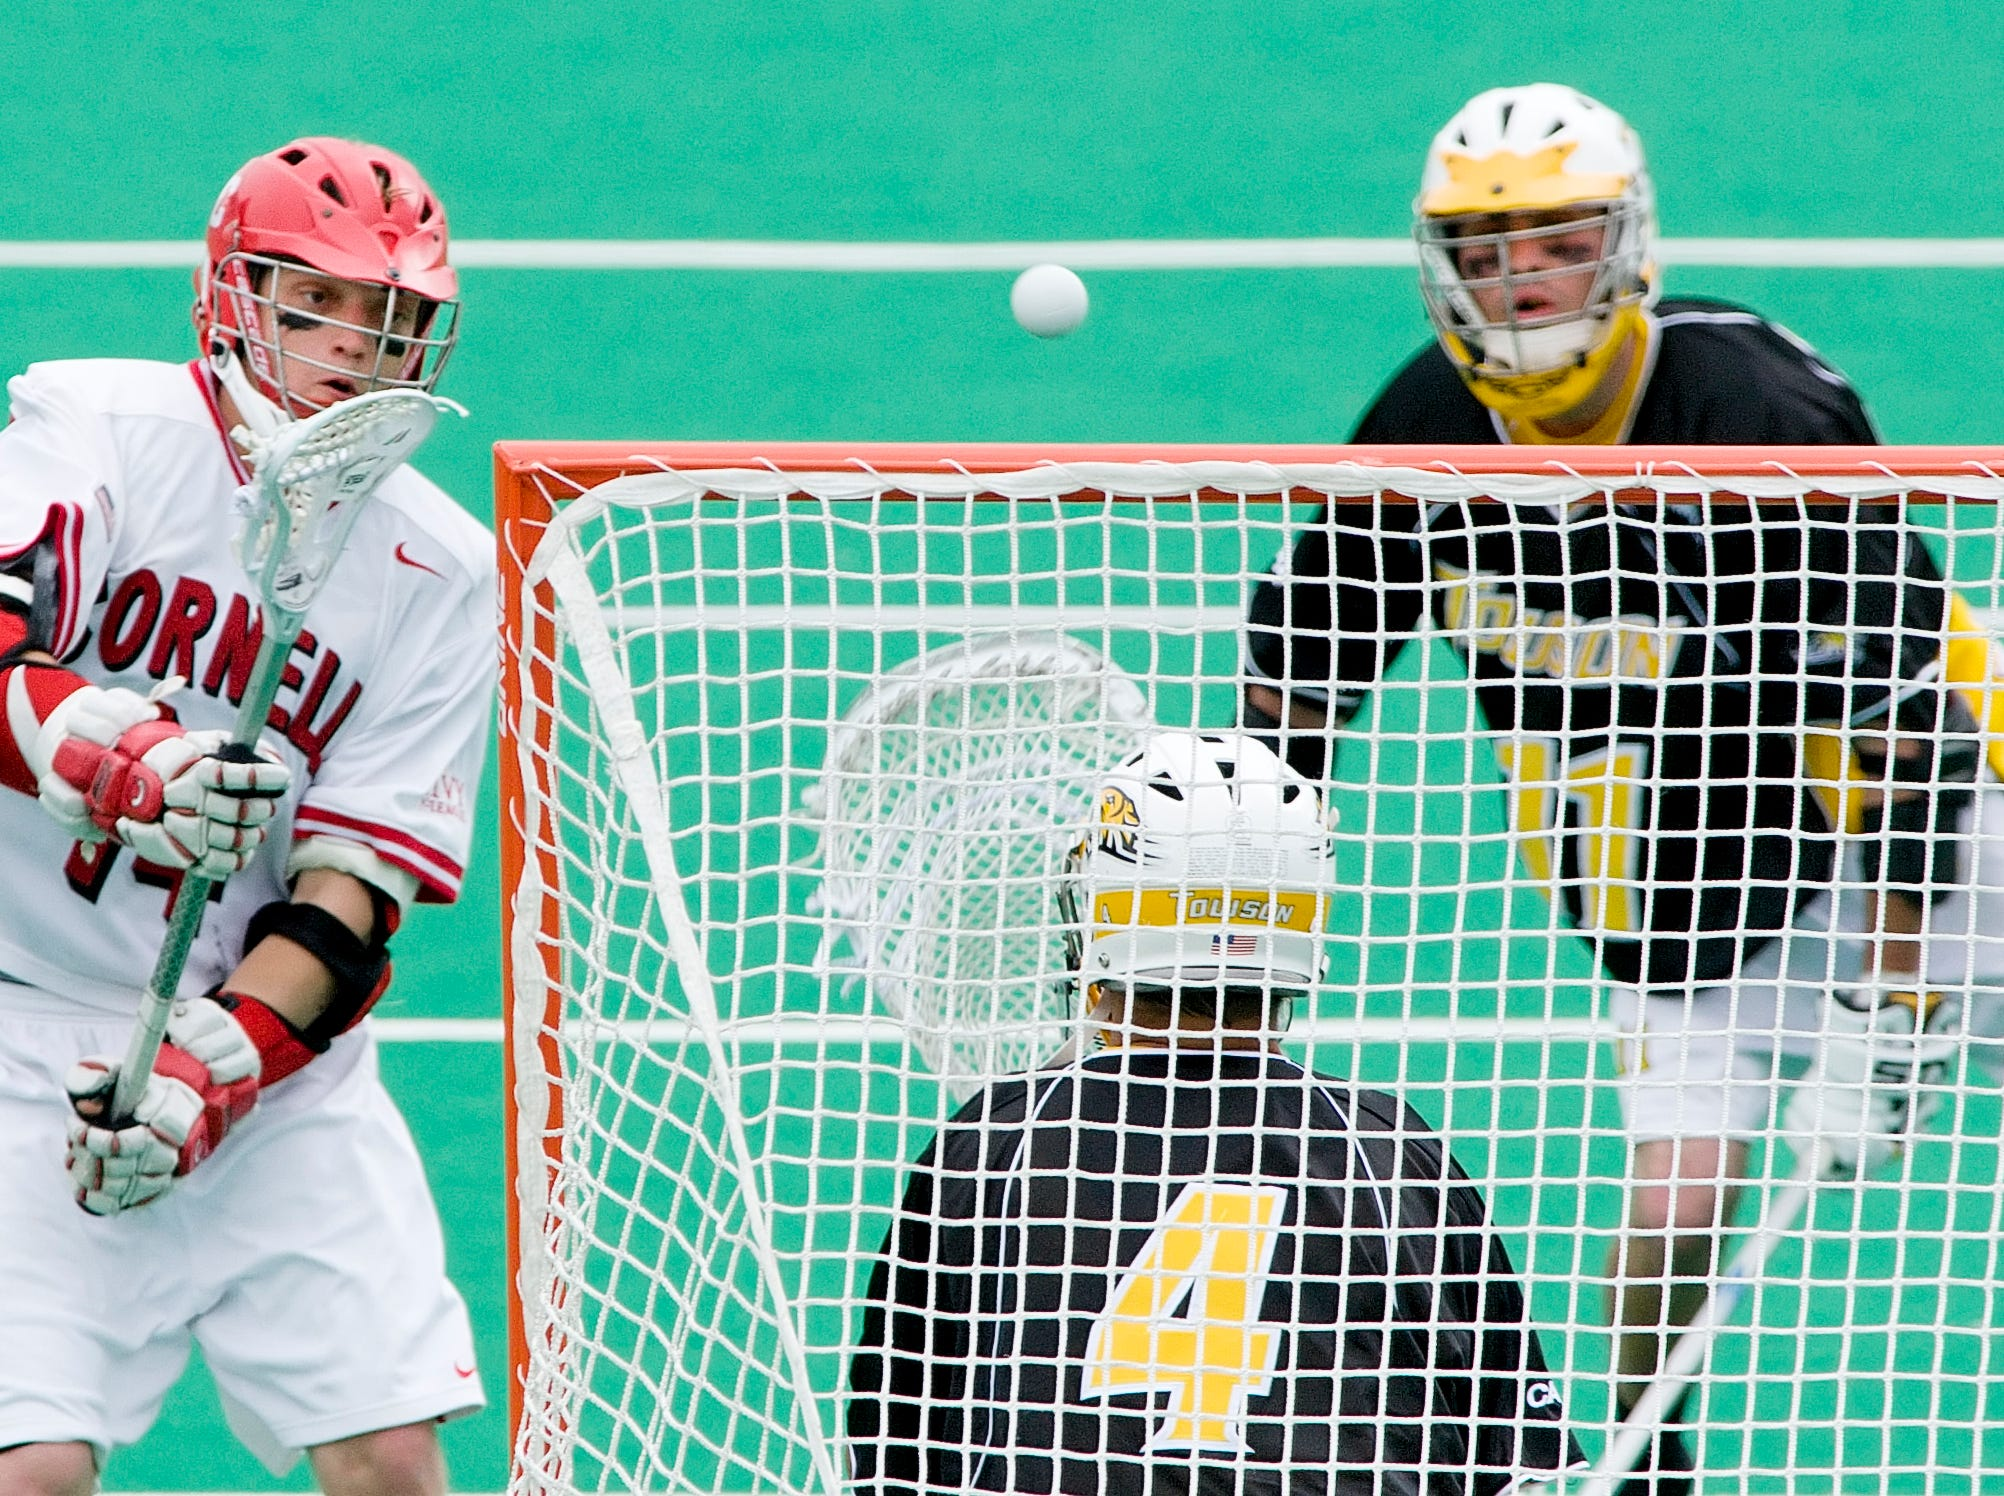 2007: Cornell's Henry Bartlett takes a shot as Towson goalie Billy Sadtler defends in the NCAA Div. 1 Championship first round game May 12 at Schoellkopf Field.